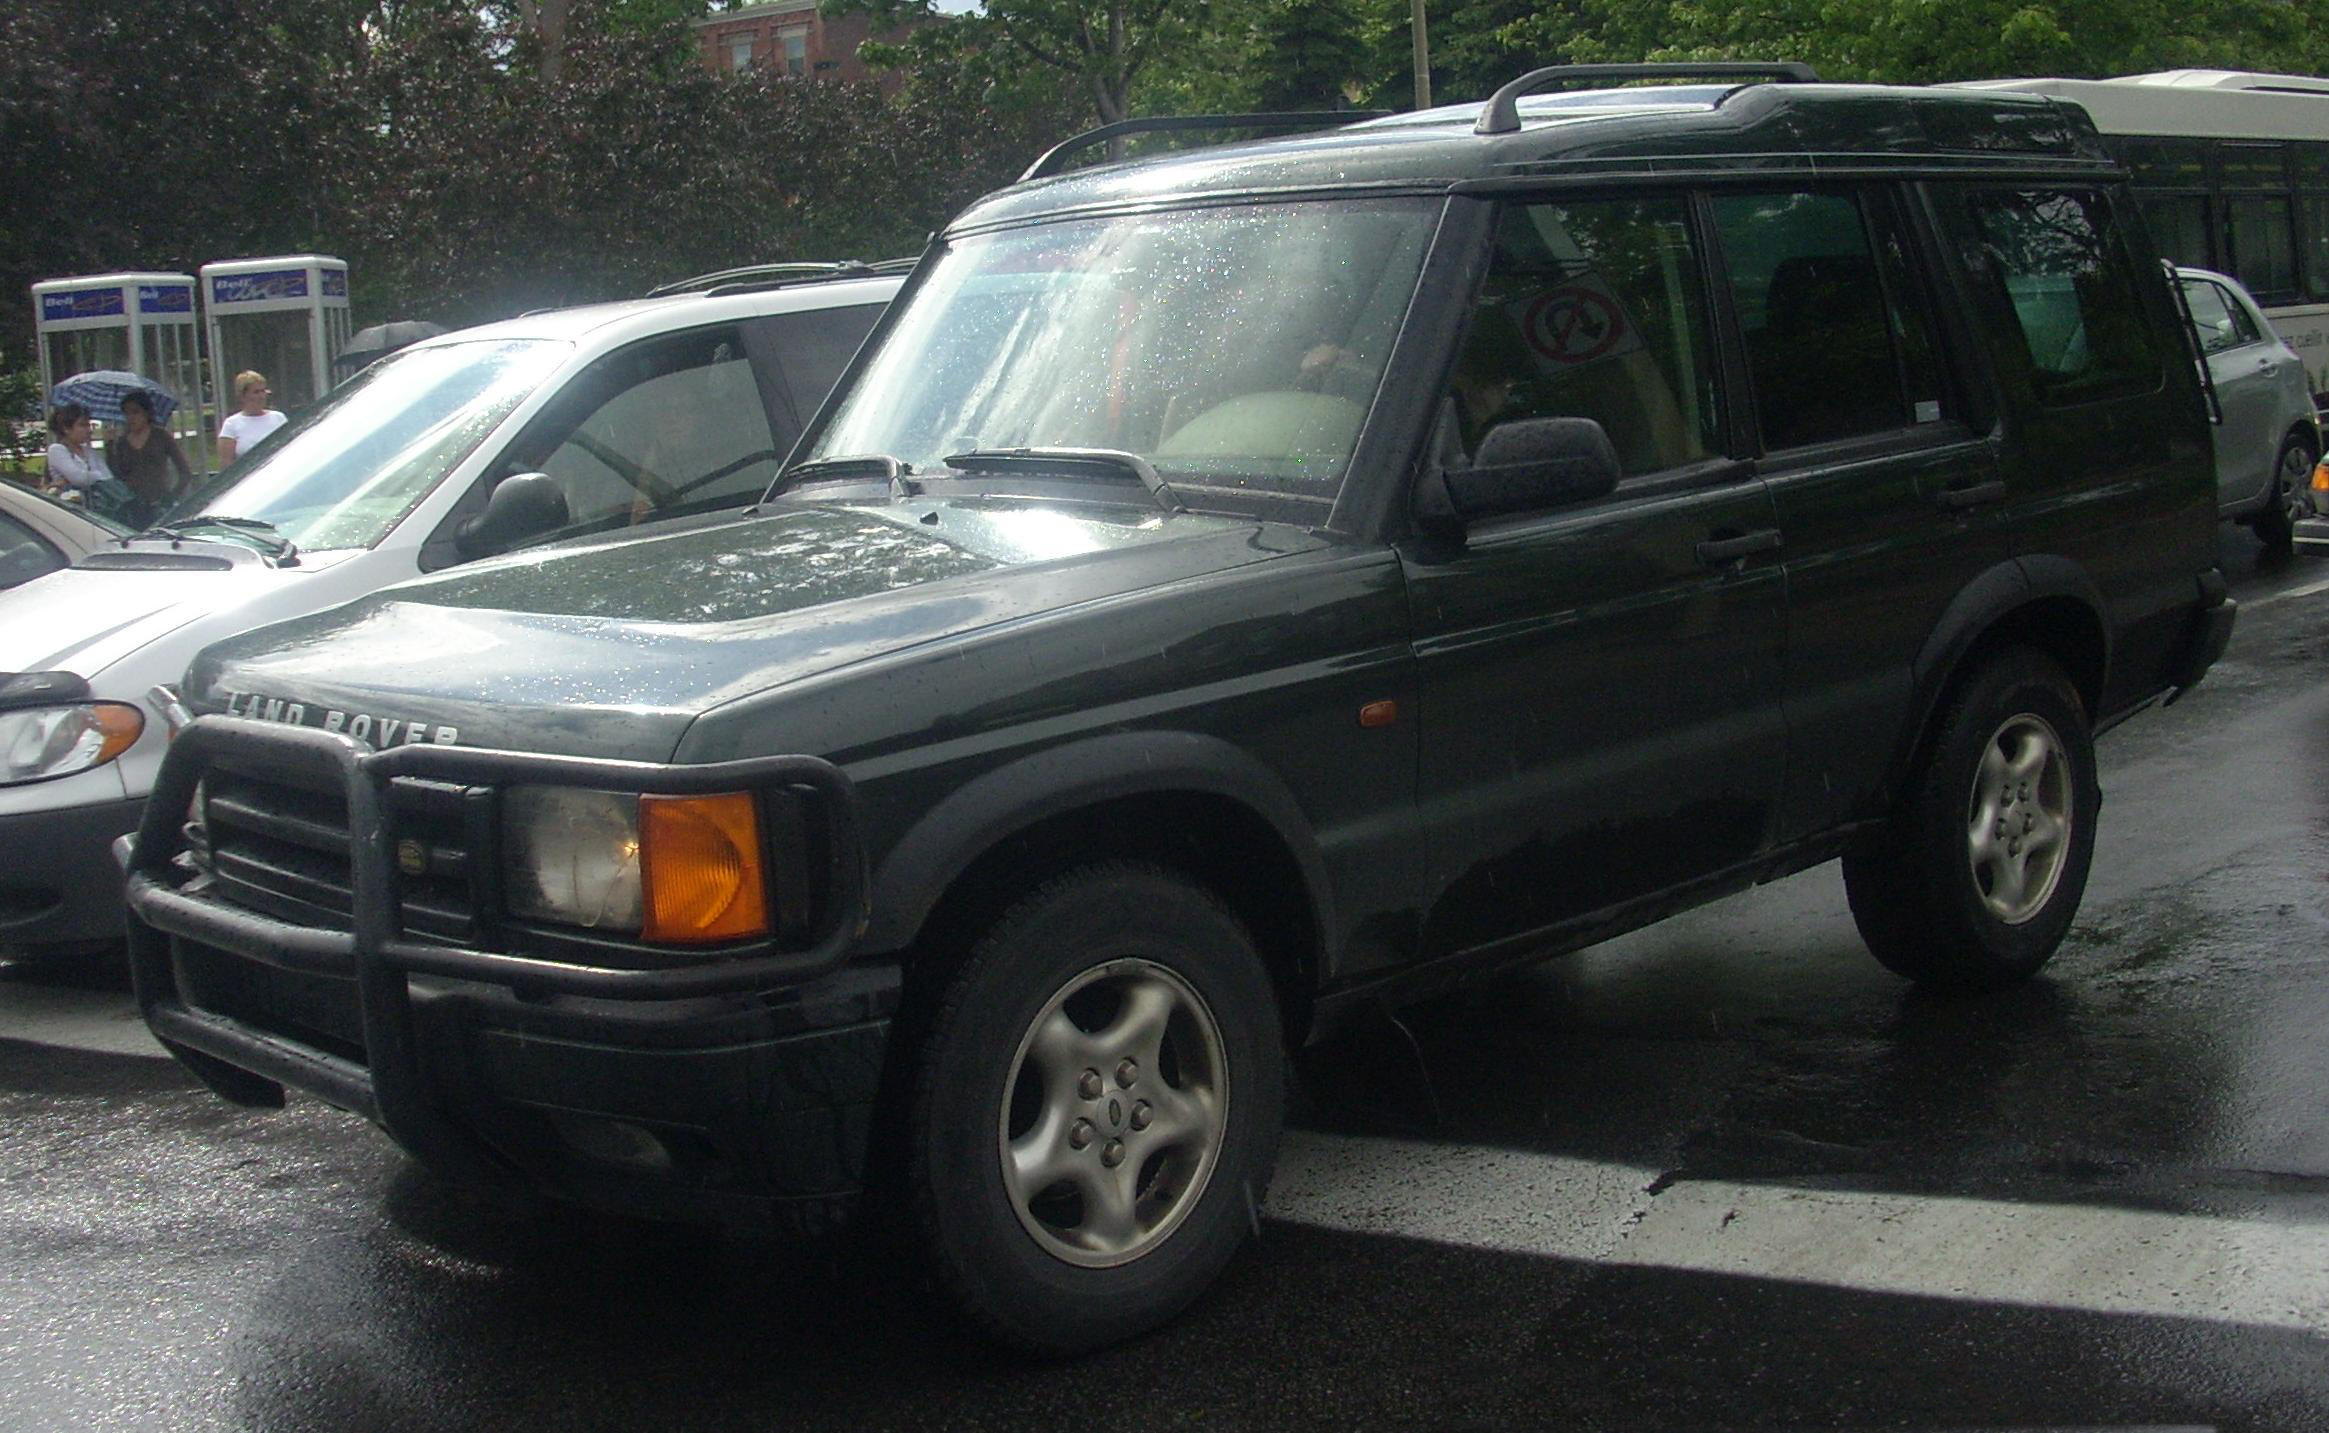 File:'99-'01 Land Rover Discovery.JPG - Wikimedia Commons